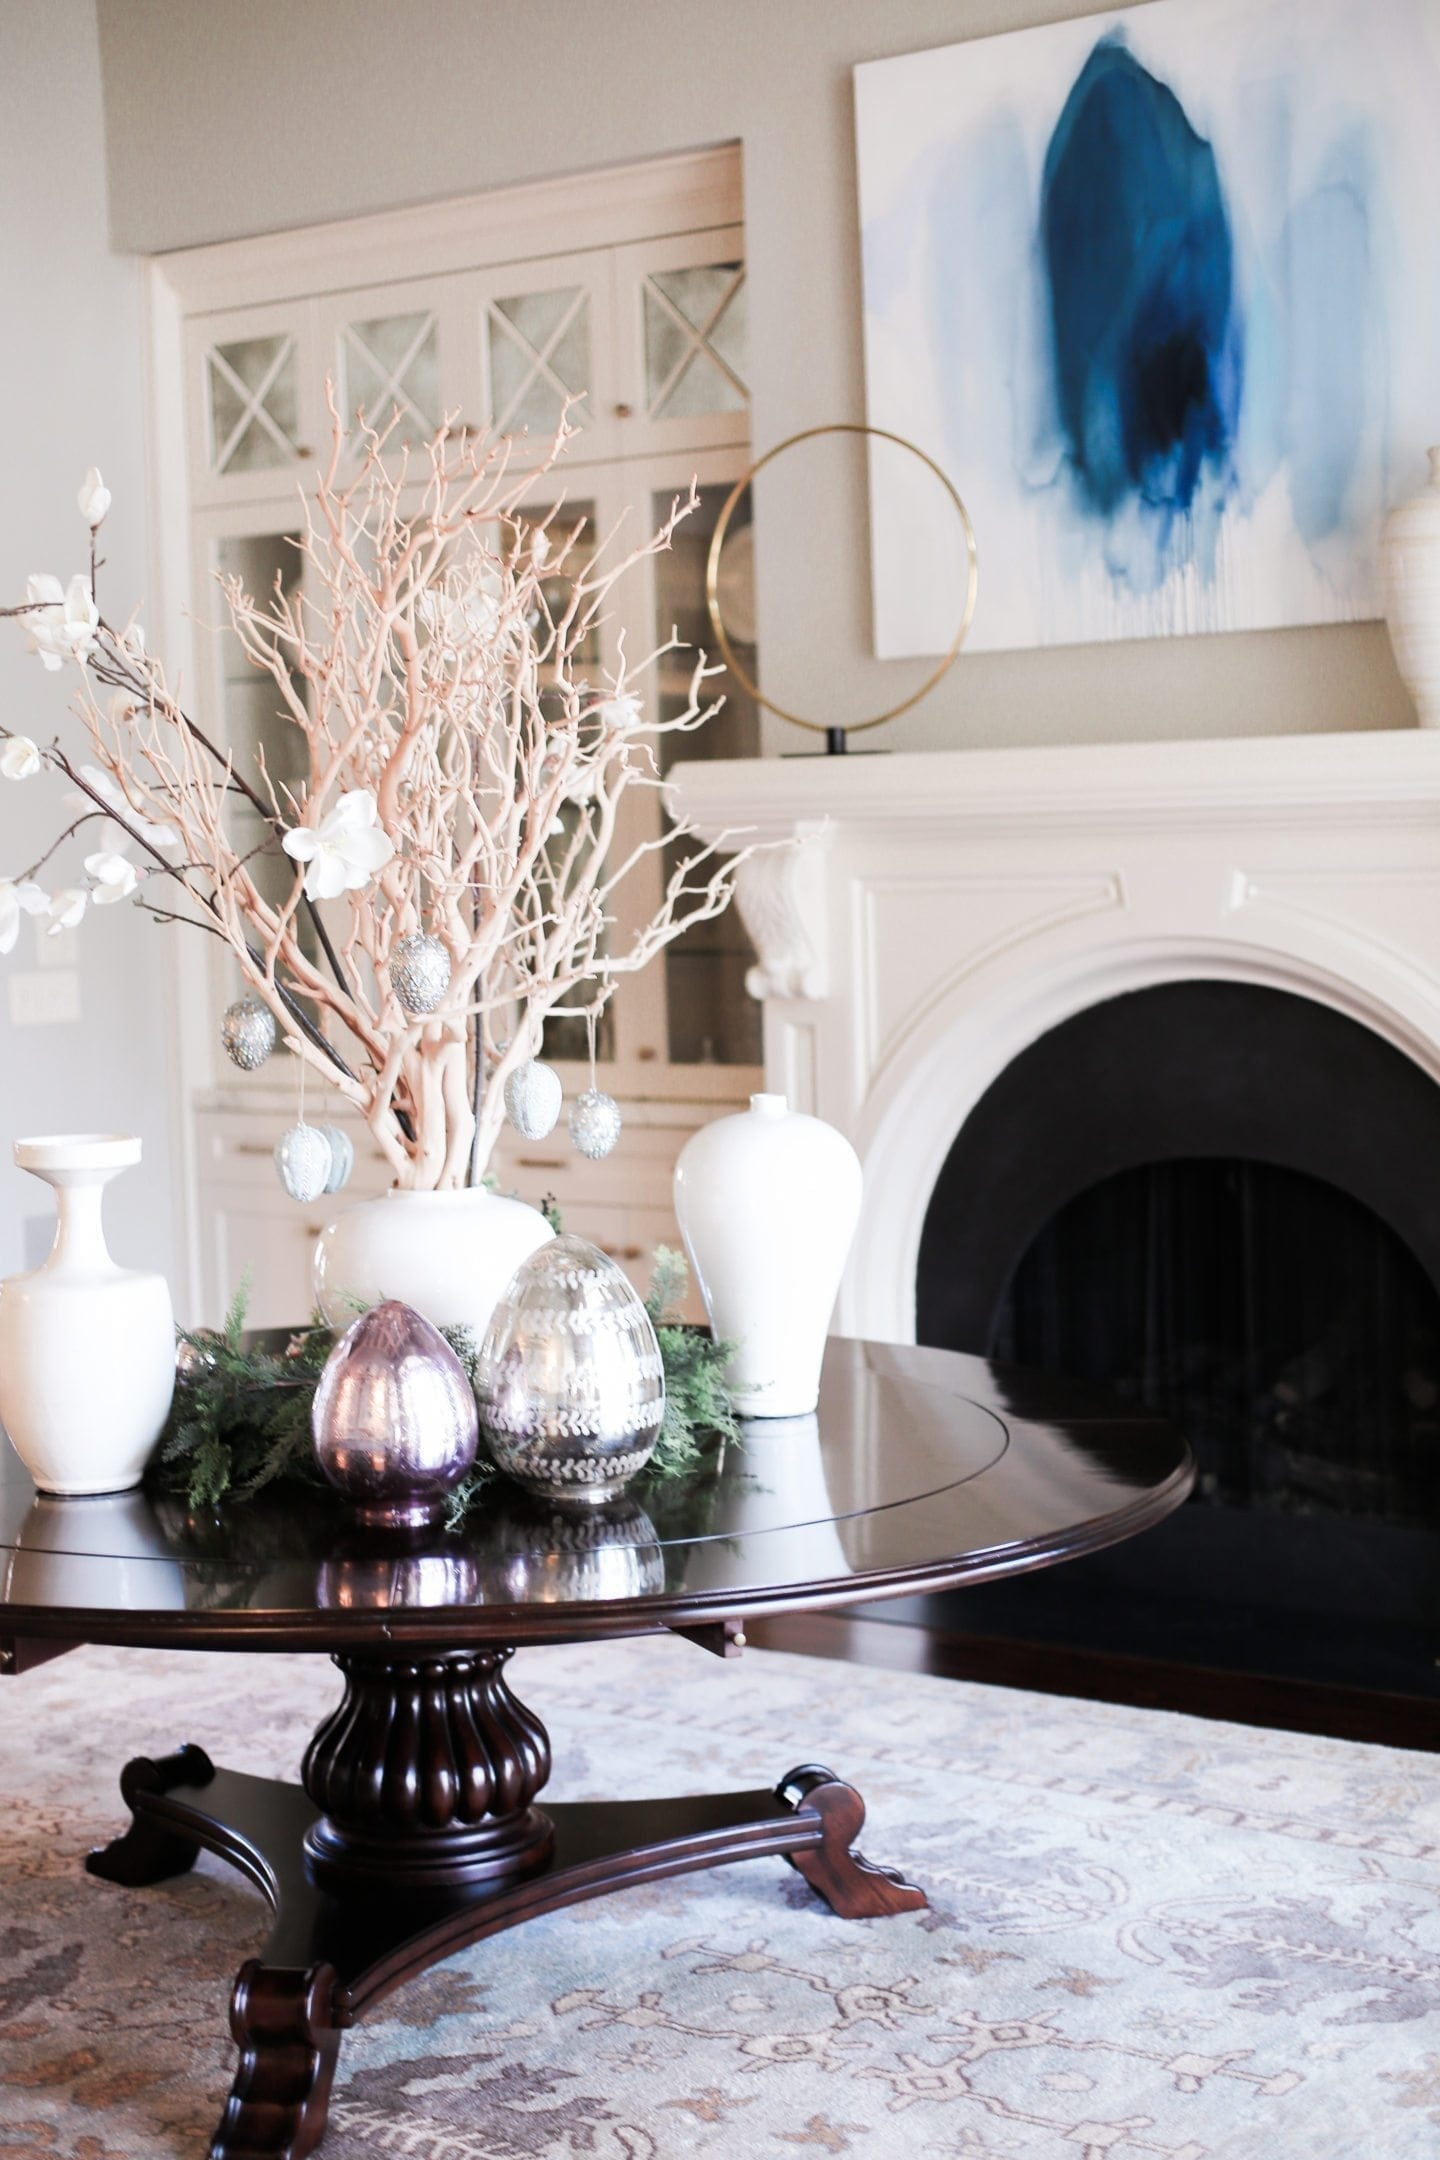 Spring decorating ideas for dining room table. White urns with manzanita branches and faux magnolia leaves.